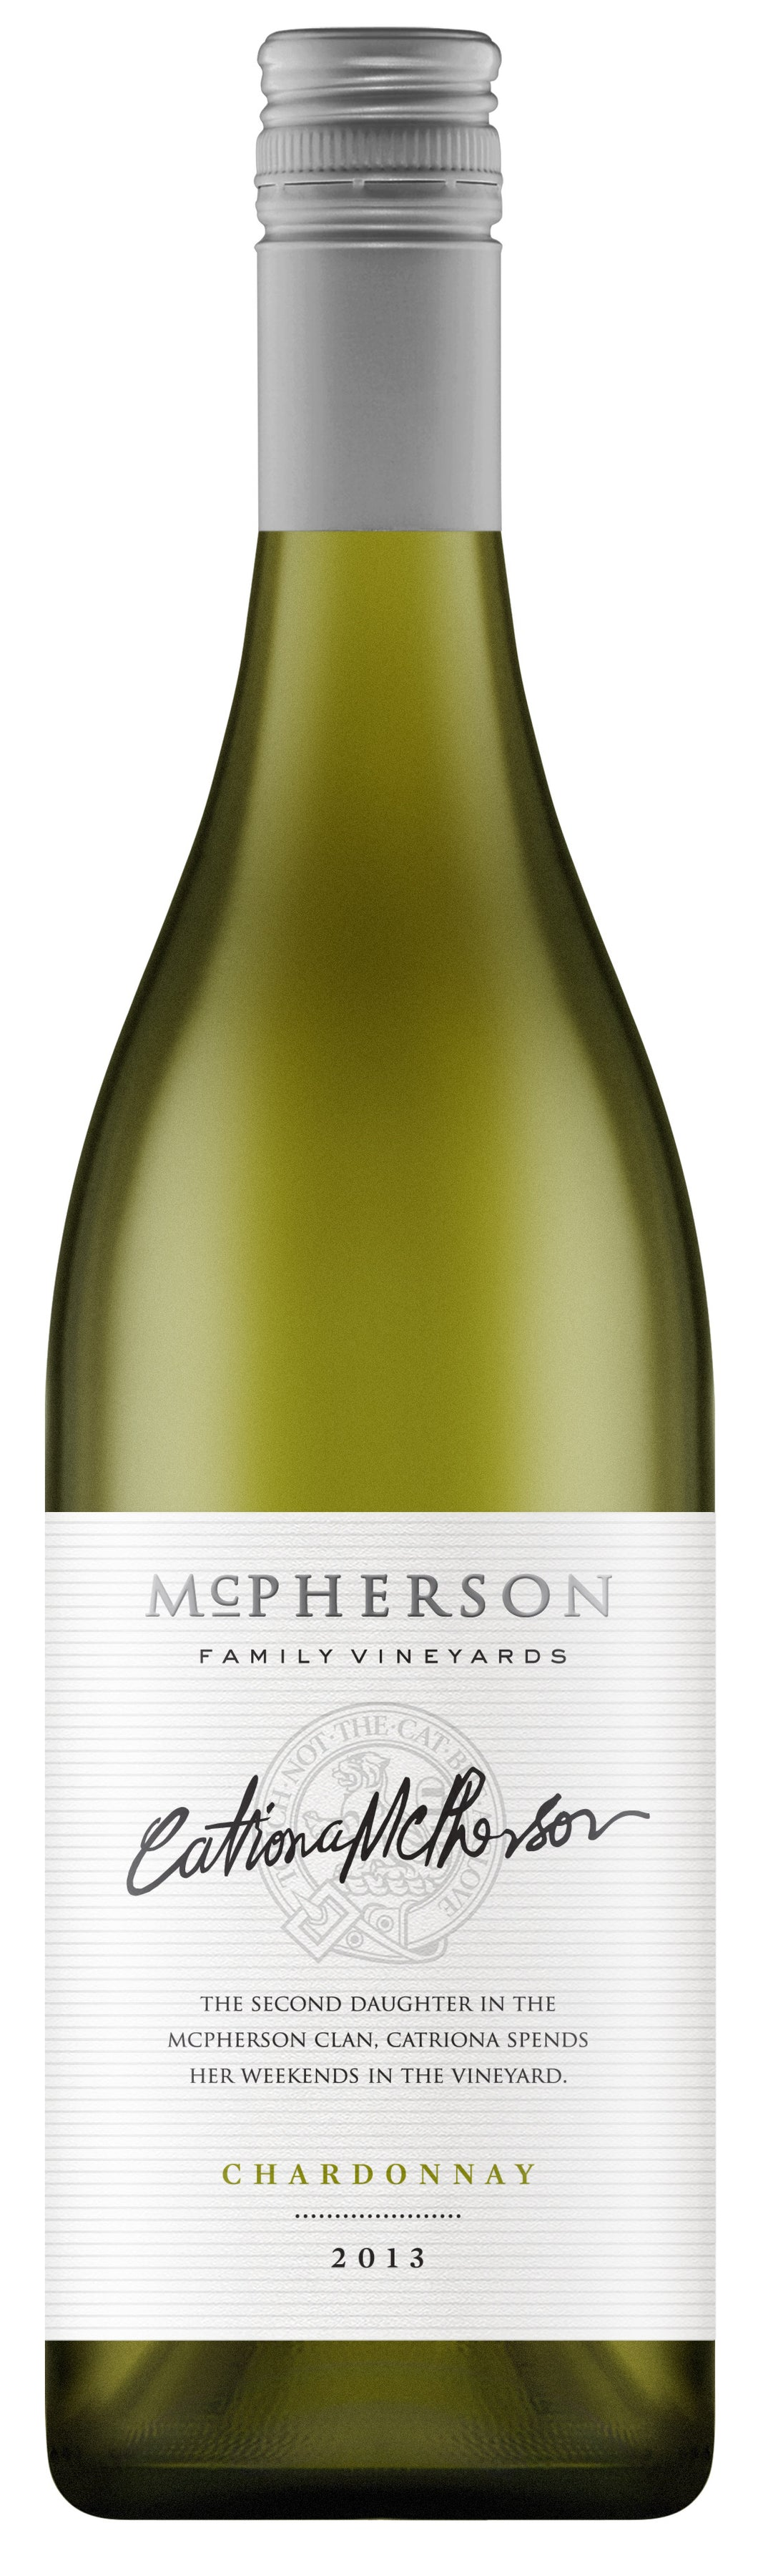 McPherson Chardonnay 2017 - Network Wines